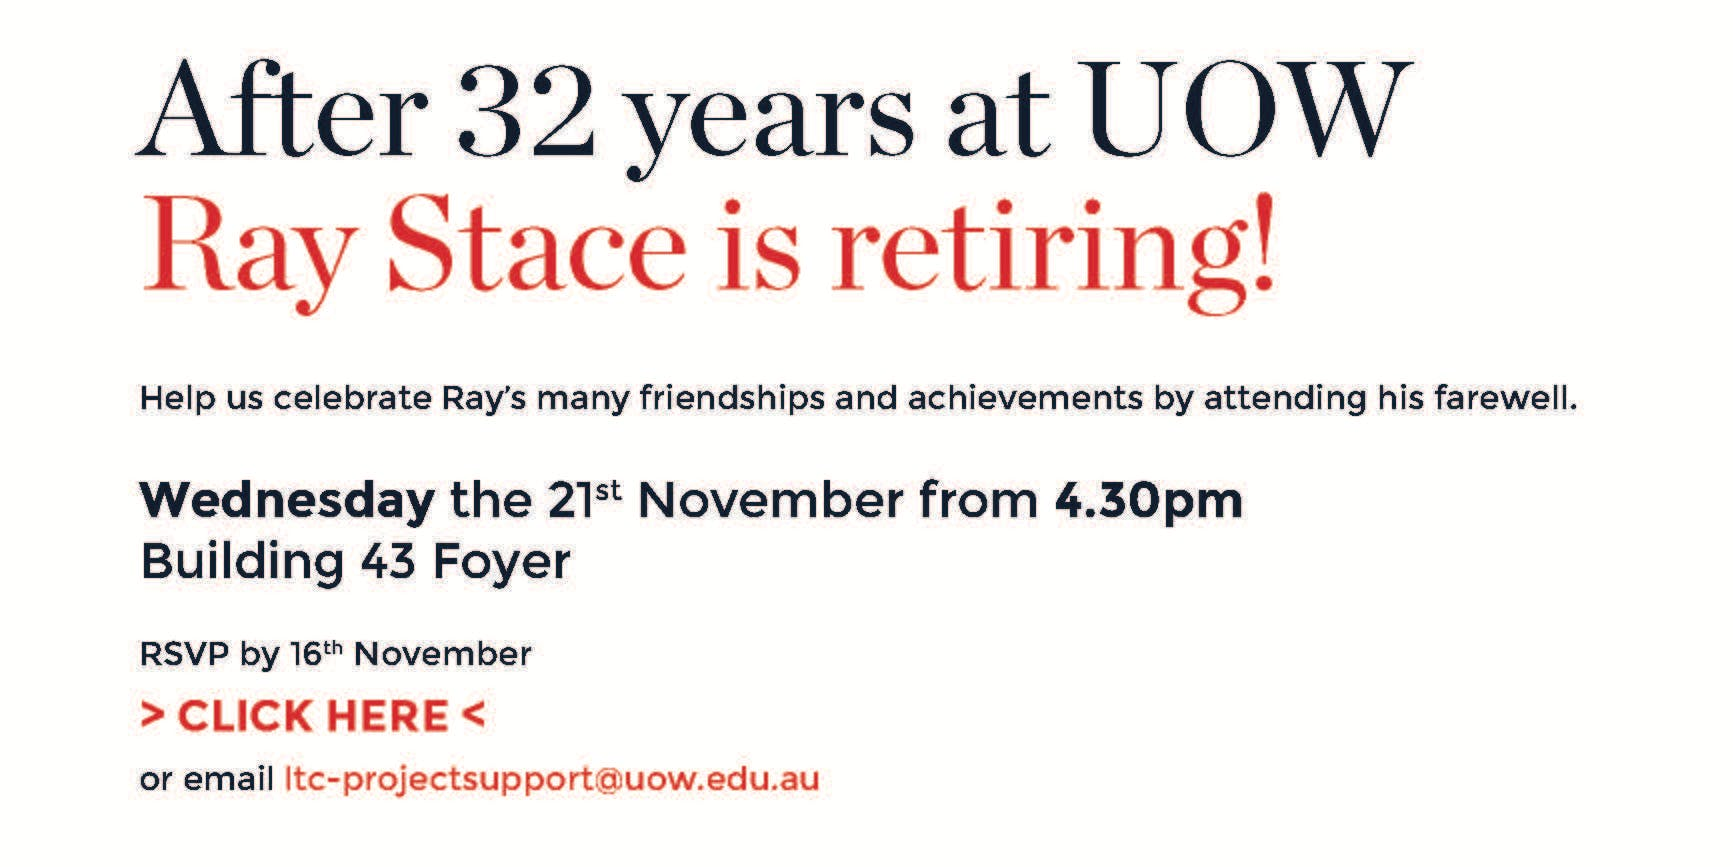 Ray Stace's Retirement Party